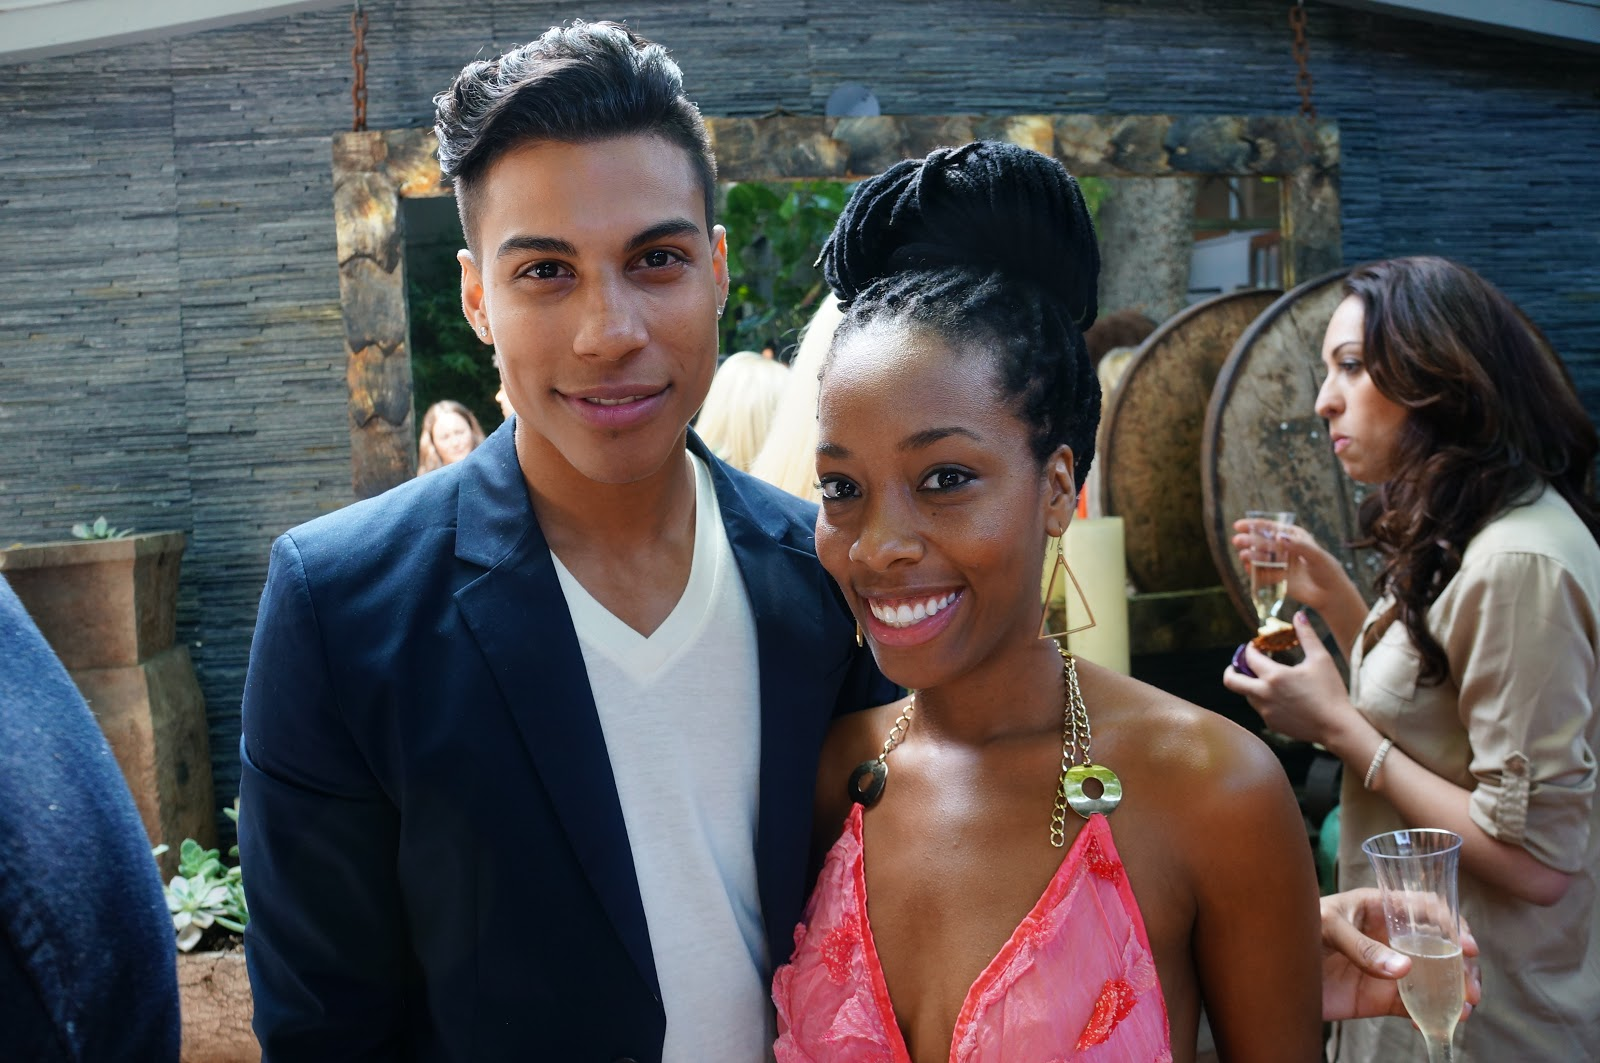 6a7926e61f36c The Tastemakers of LA Garden Party was officially hosted by Jae Joseph,  Taye Hansberry, Reinaldo Irizarry, Andres Matsen, Leanna Lewis, and Judy  Chang but ...